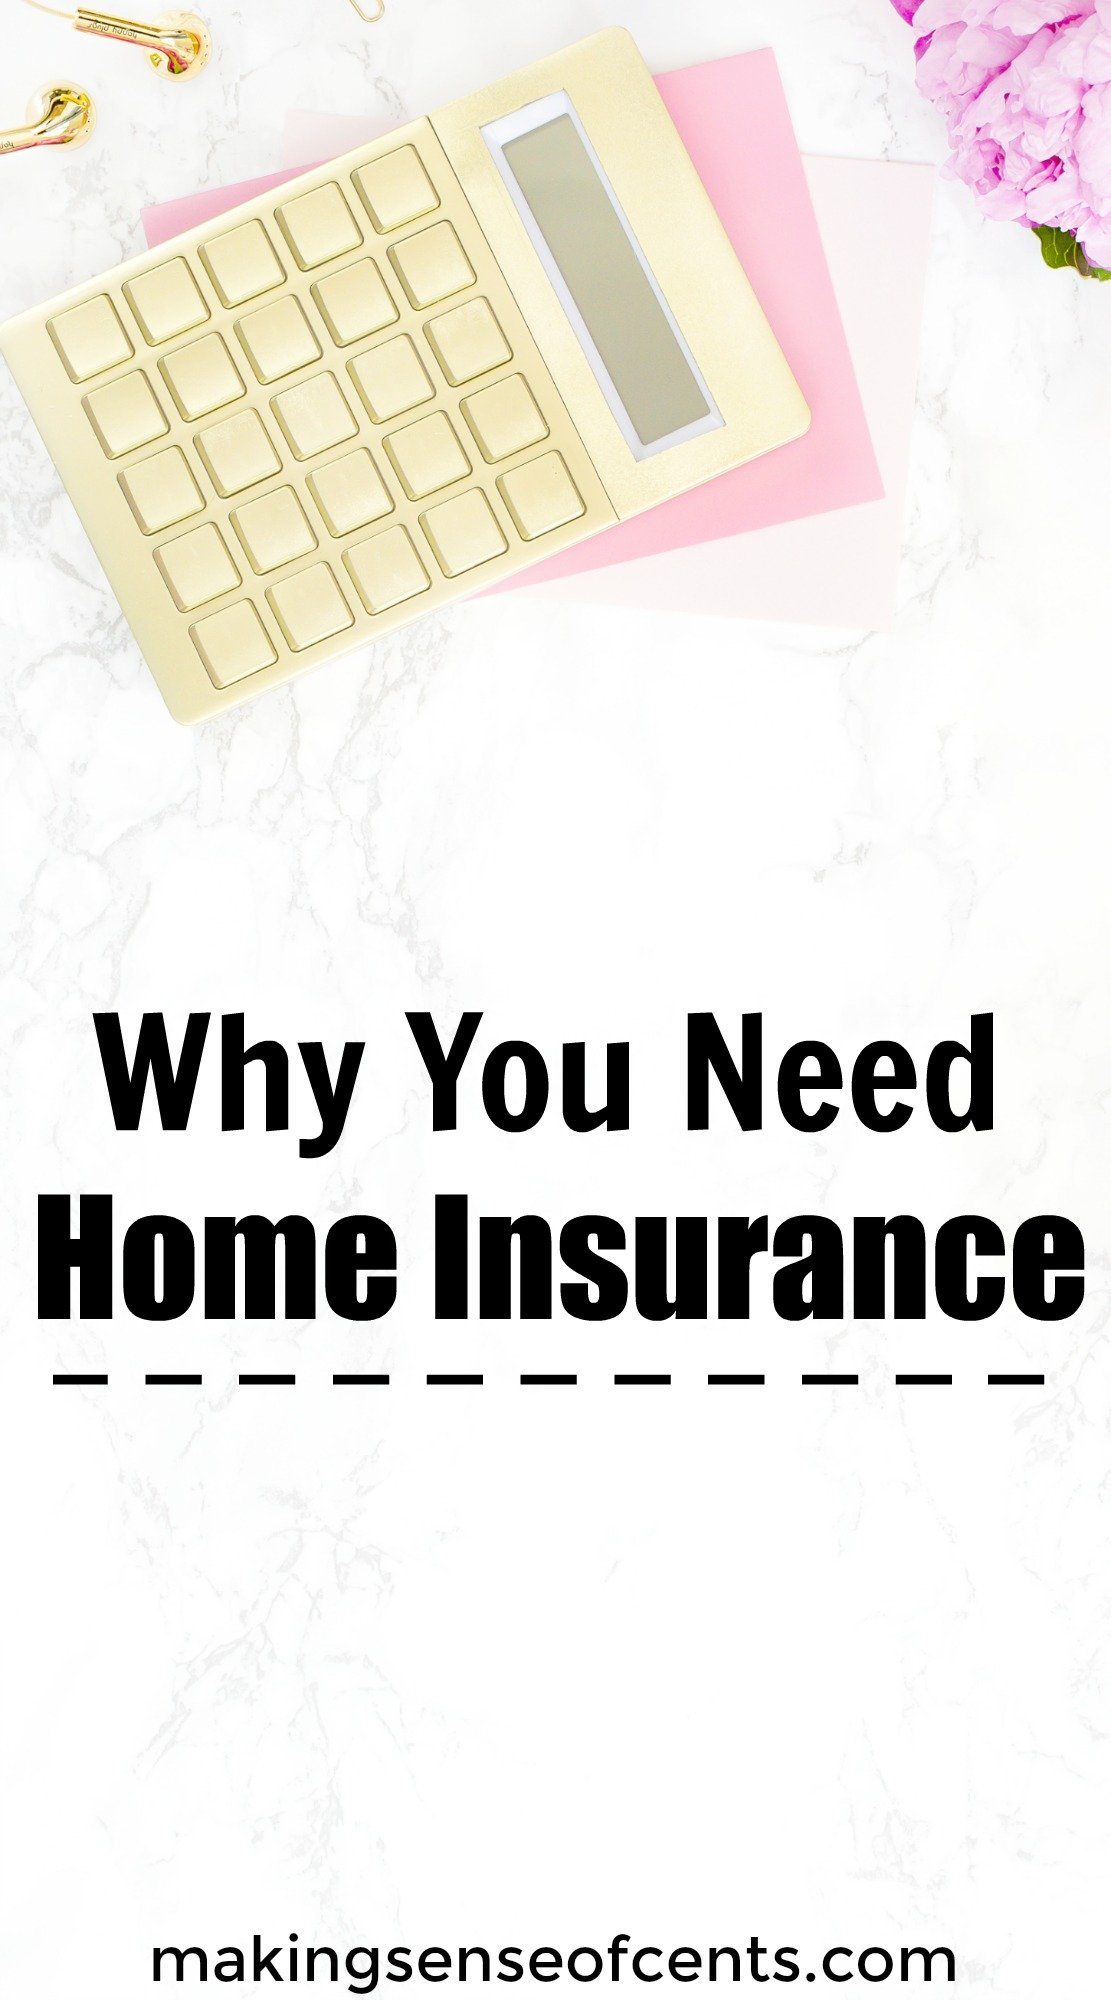 Find out why you need home insurance here. This is a great list!